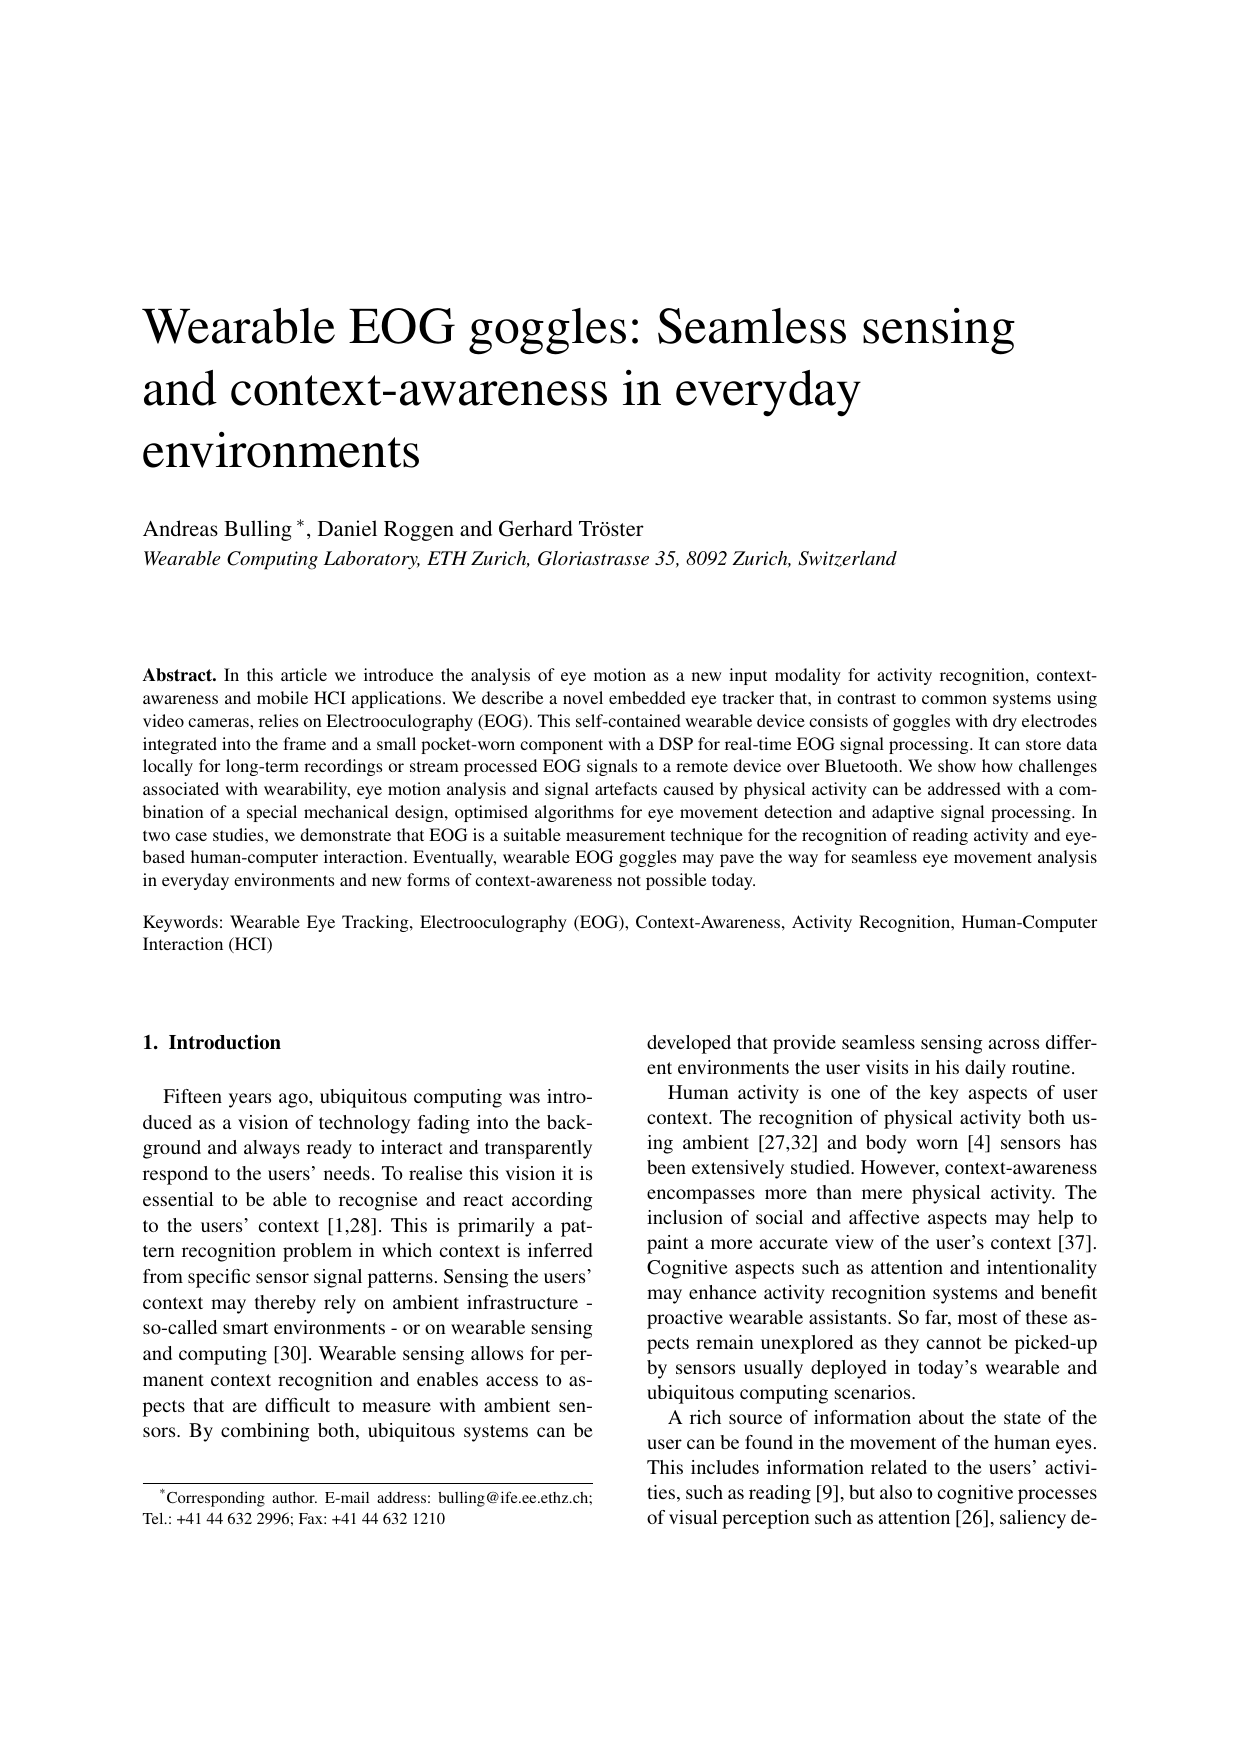 Wearable EOG goggles: Seamless sensing and context-awareness in everyday environments